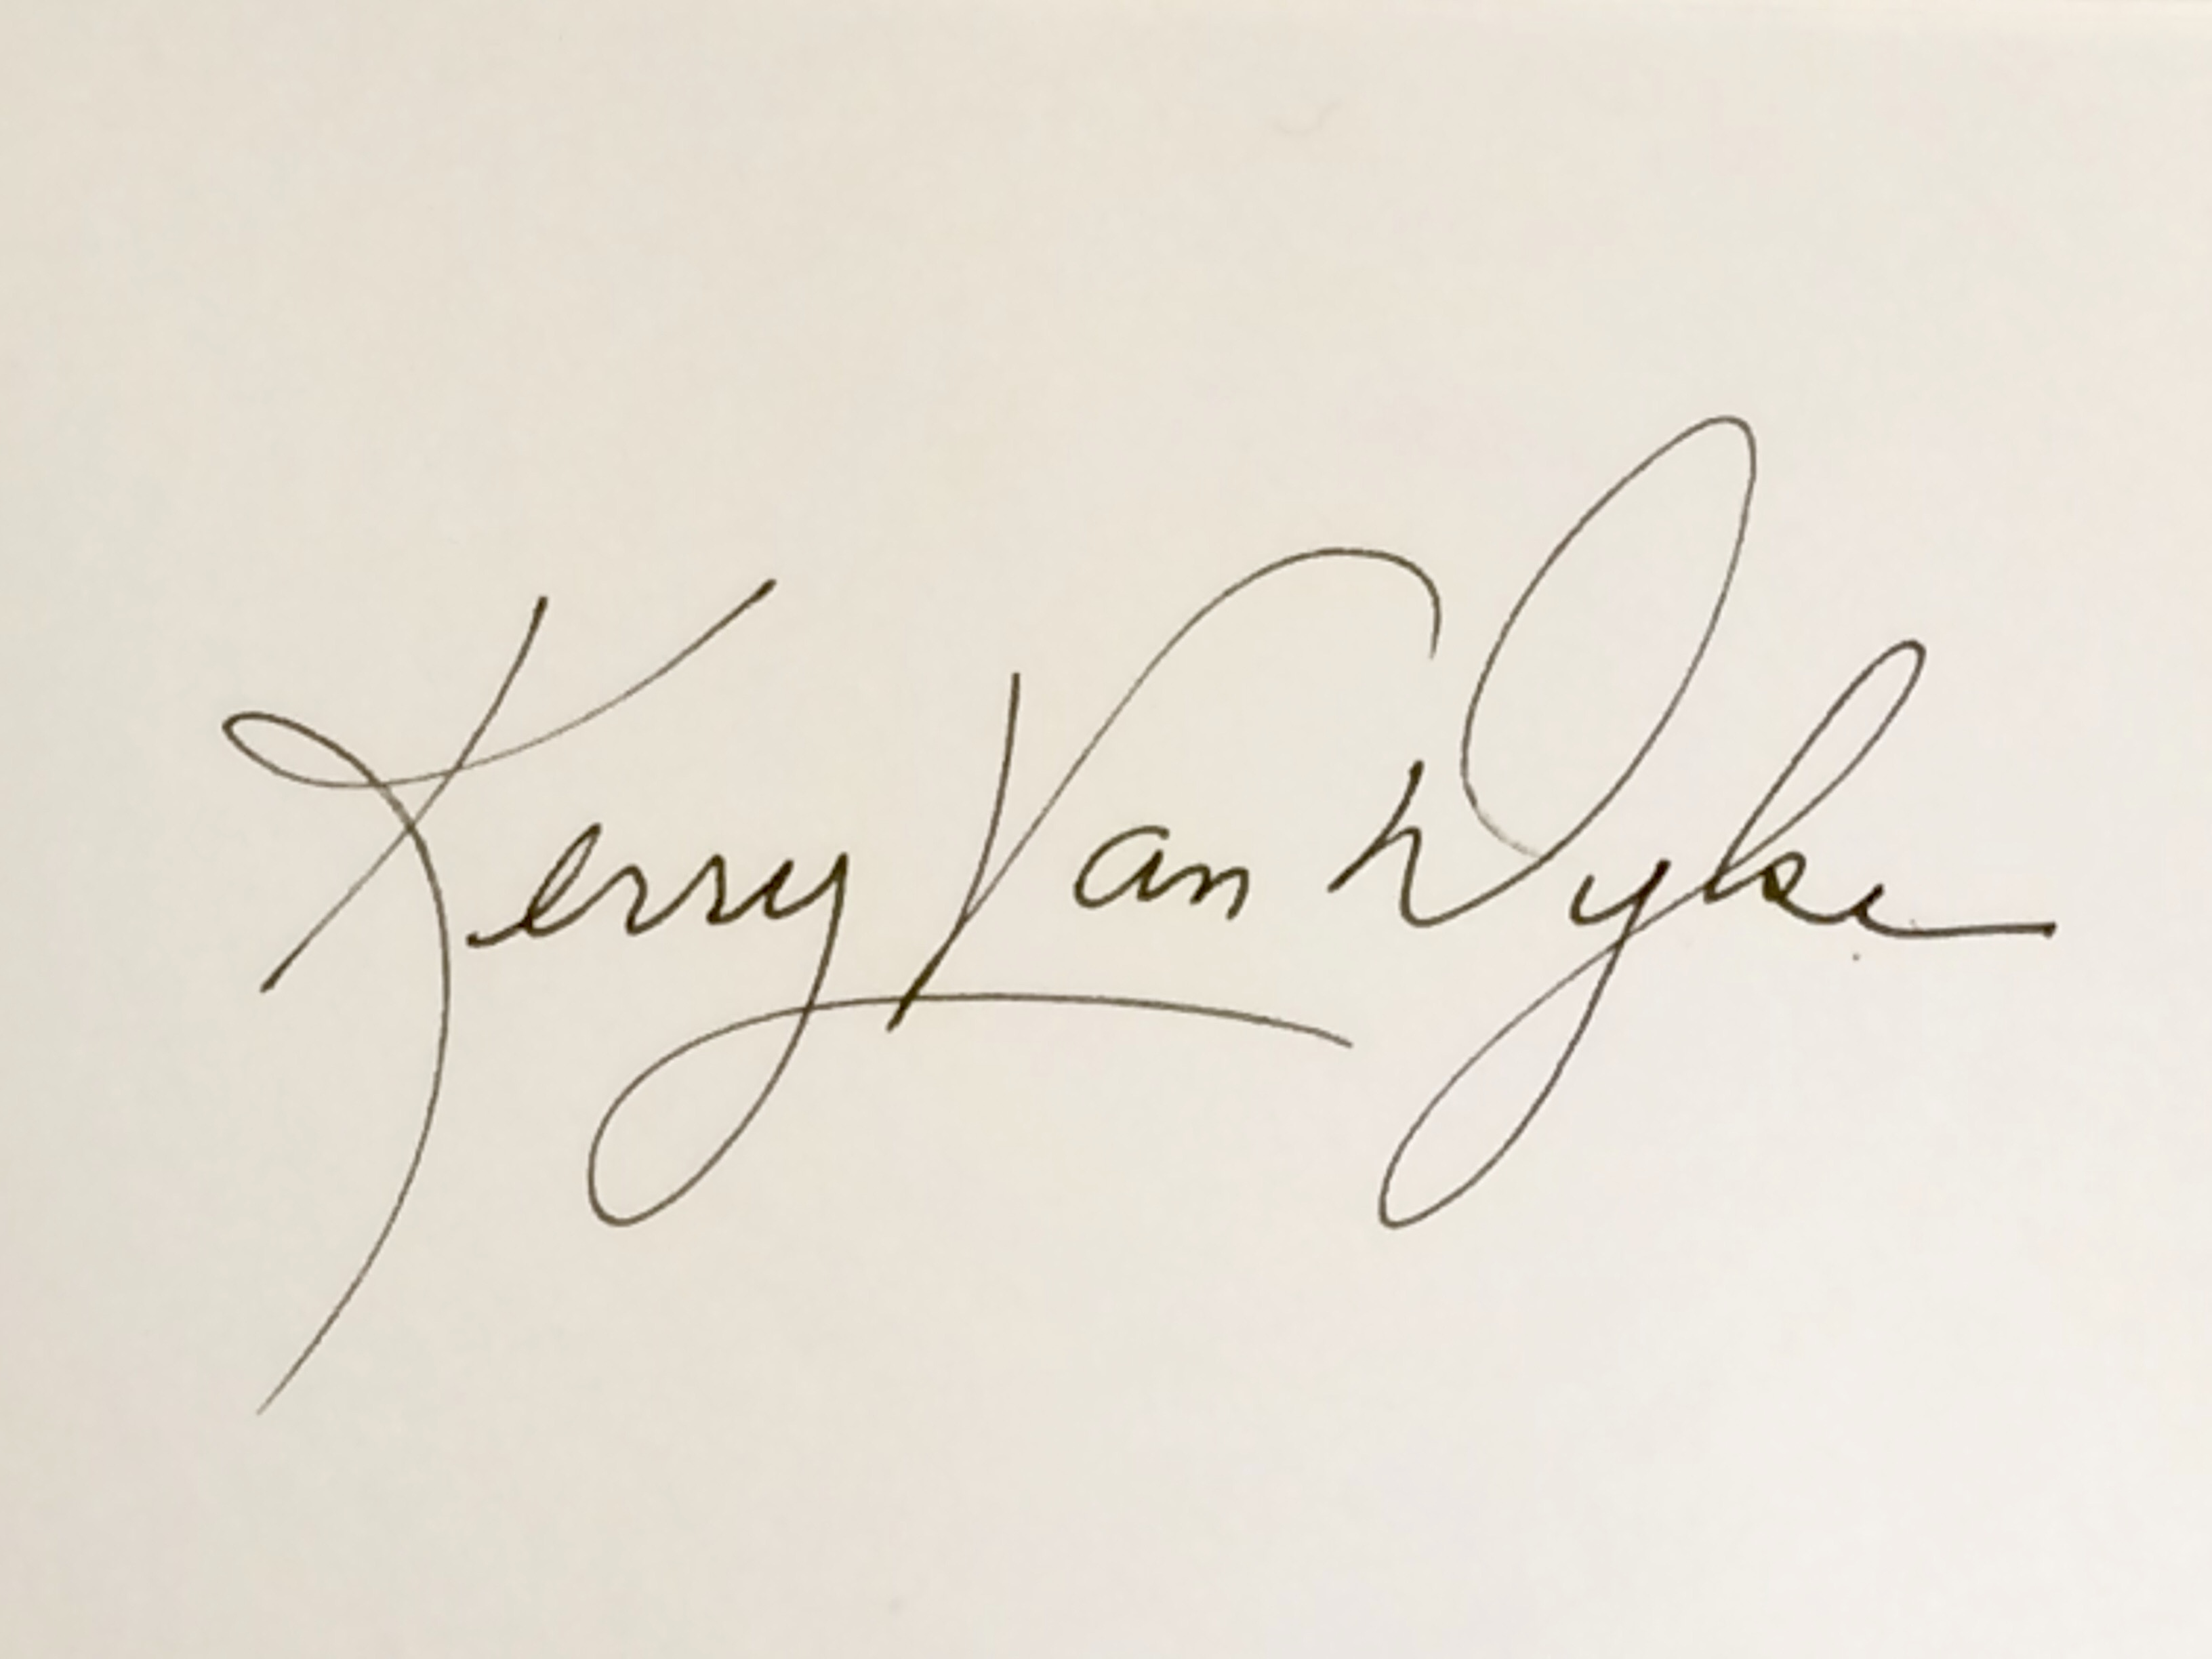 Kerry Van Dyke's Signature